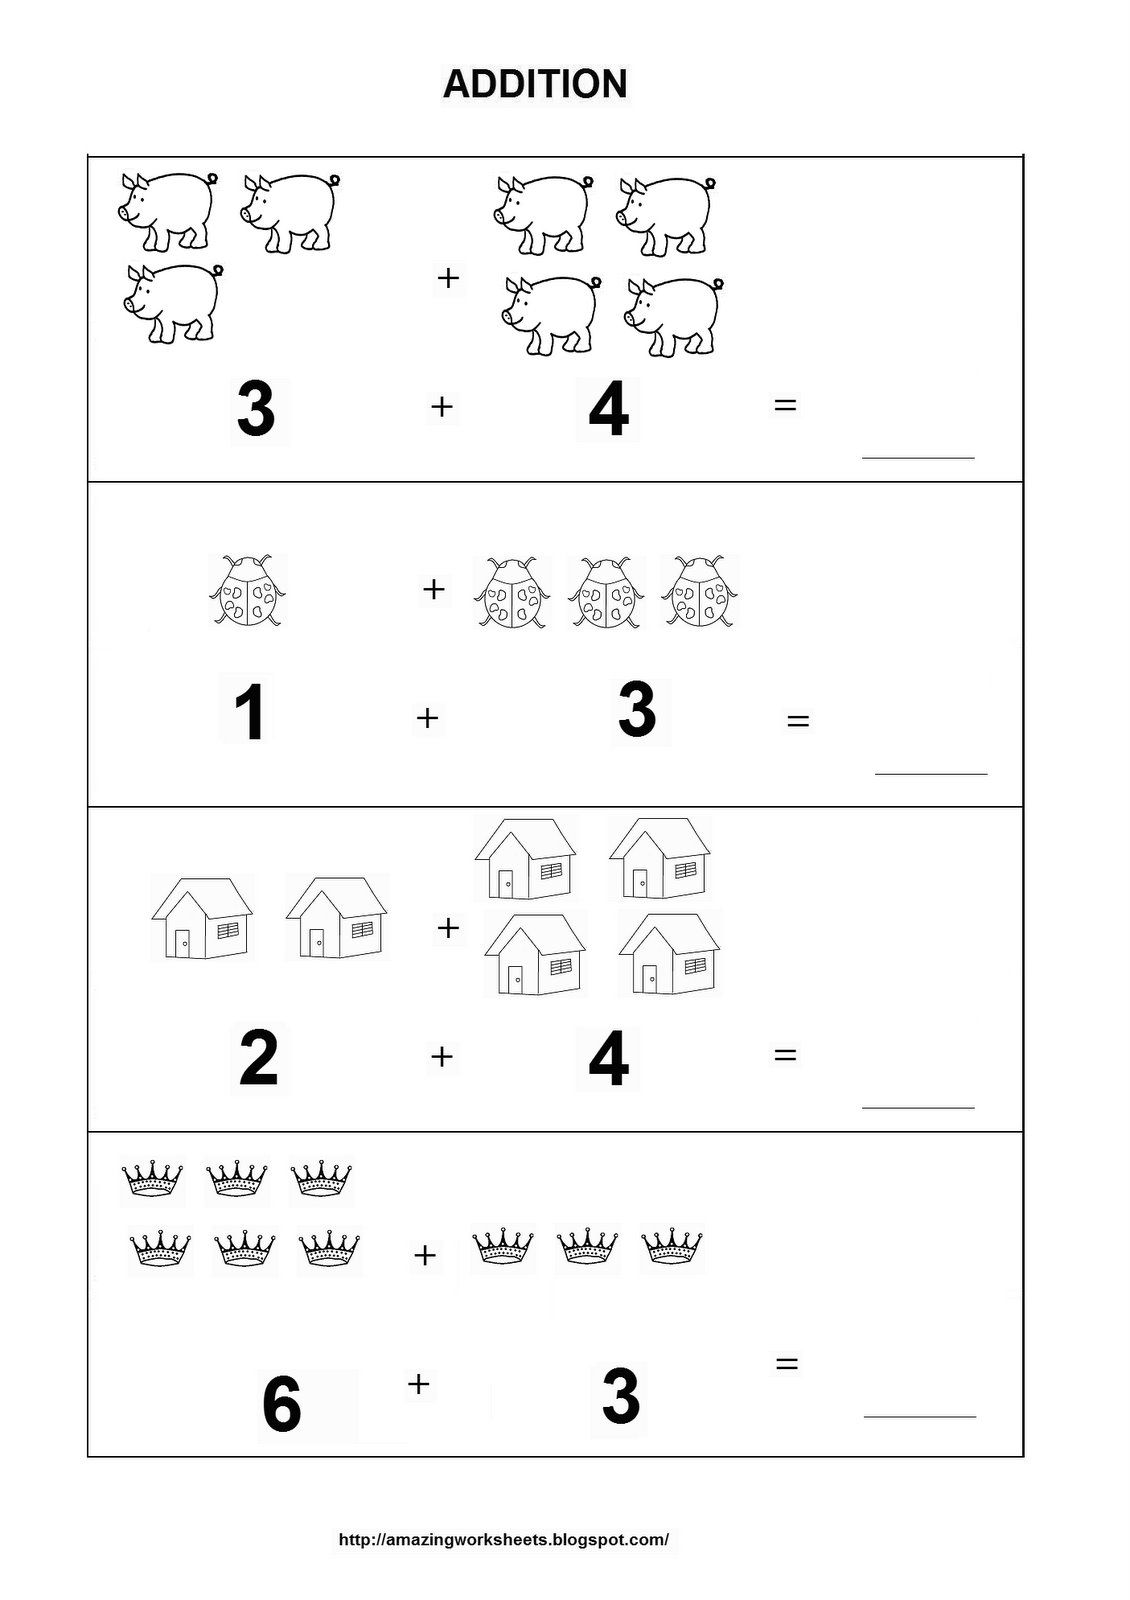 Addition worksheets and Worksheets on Pinterest